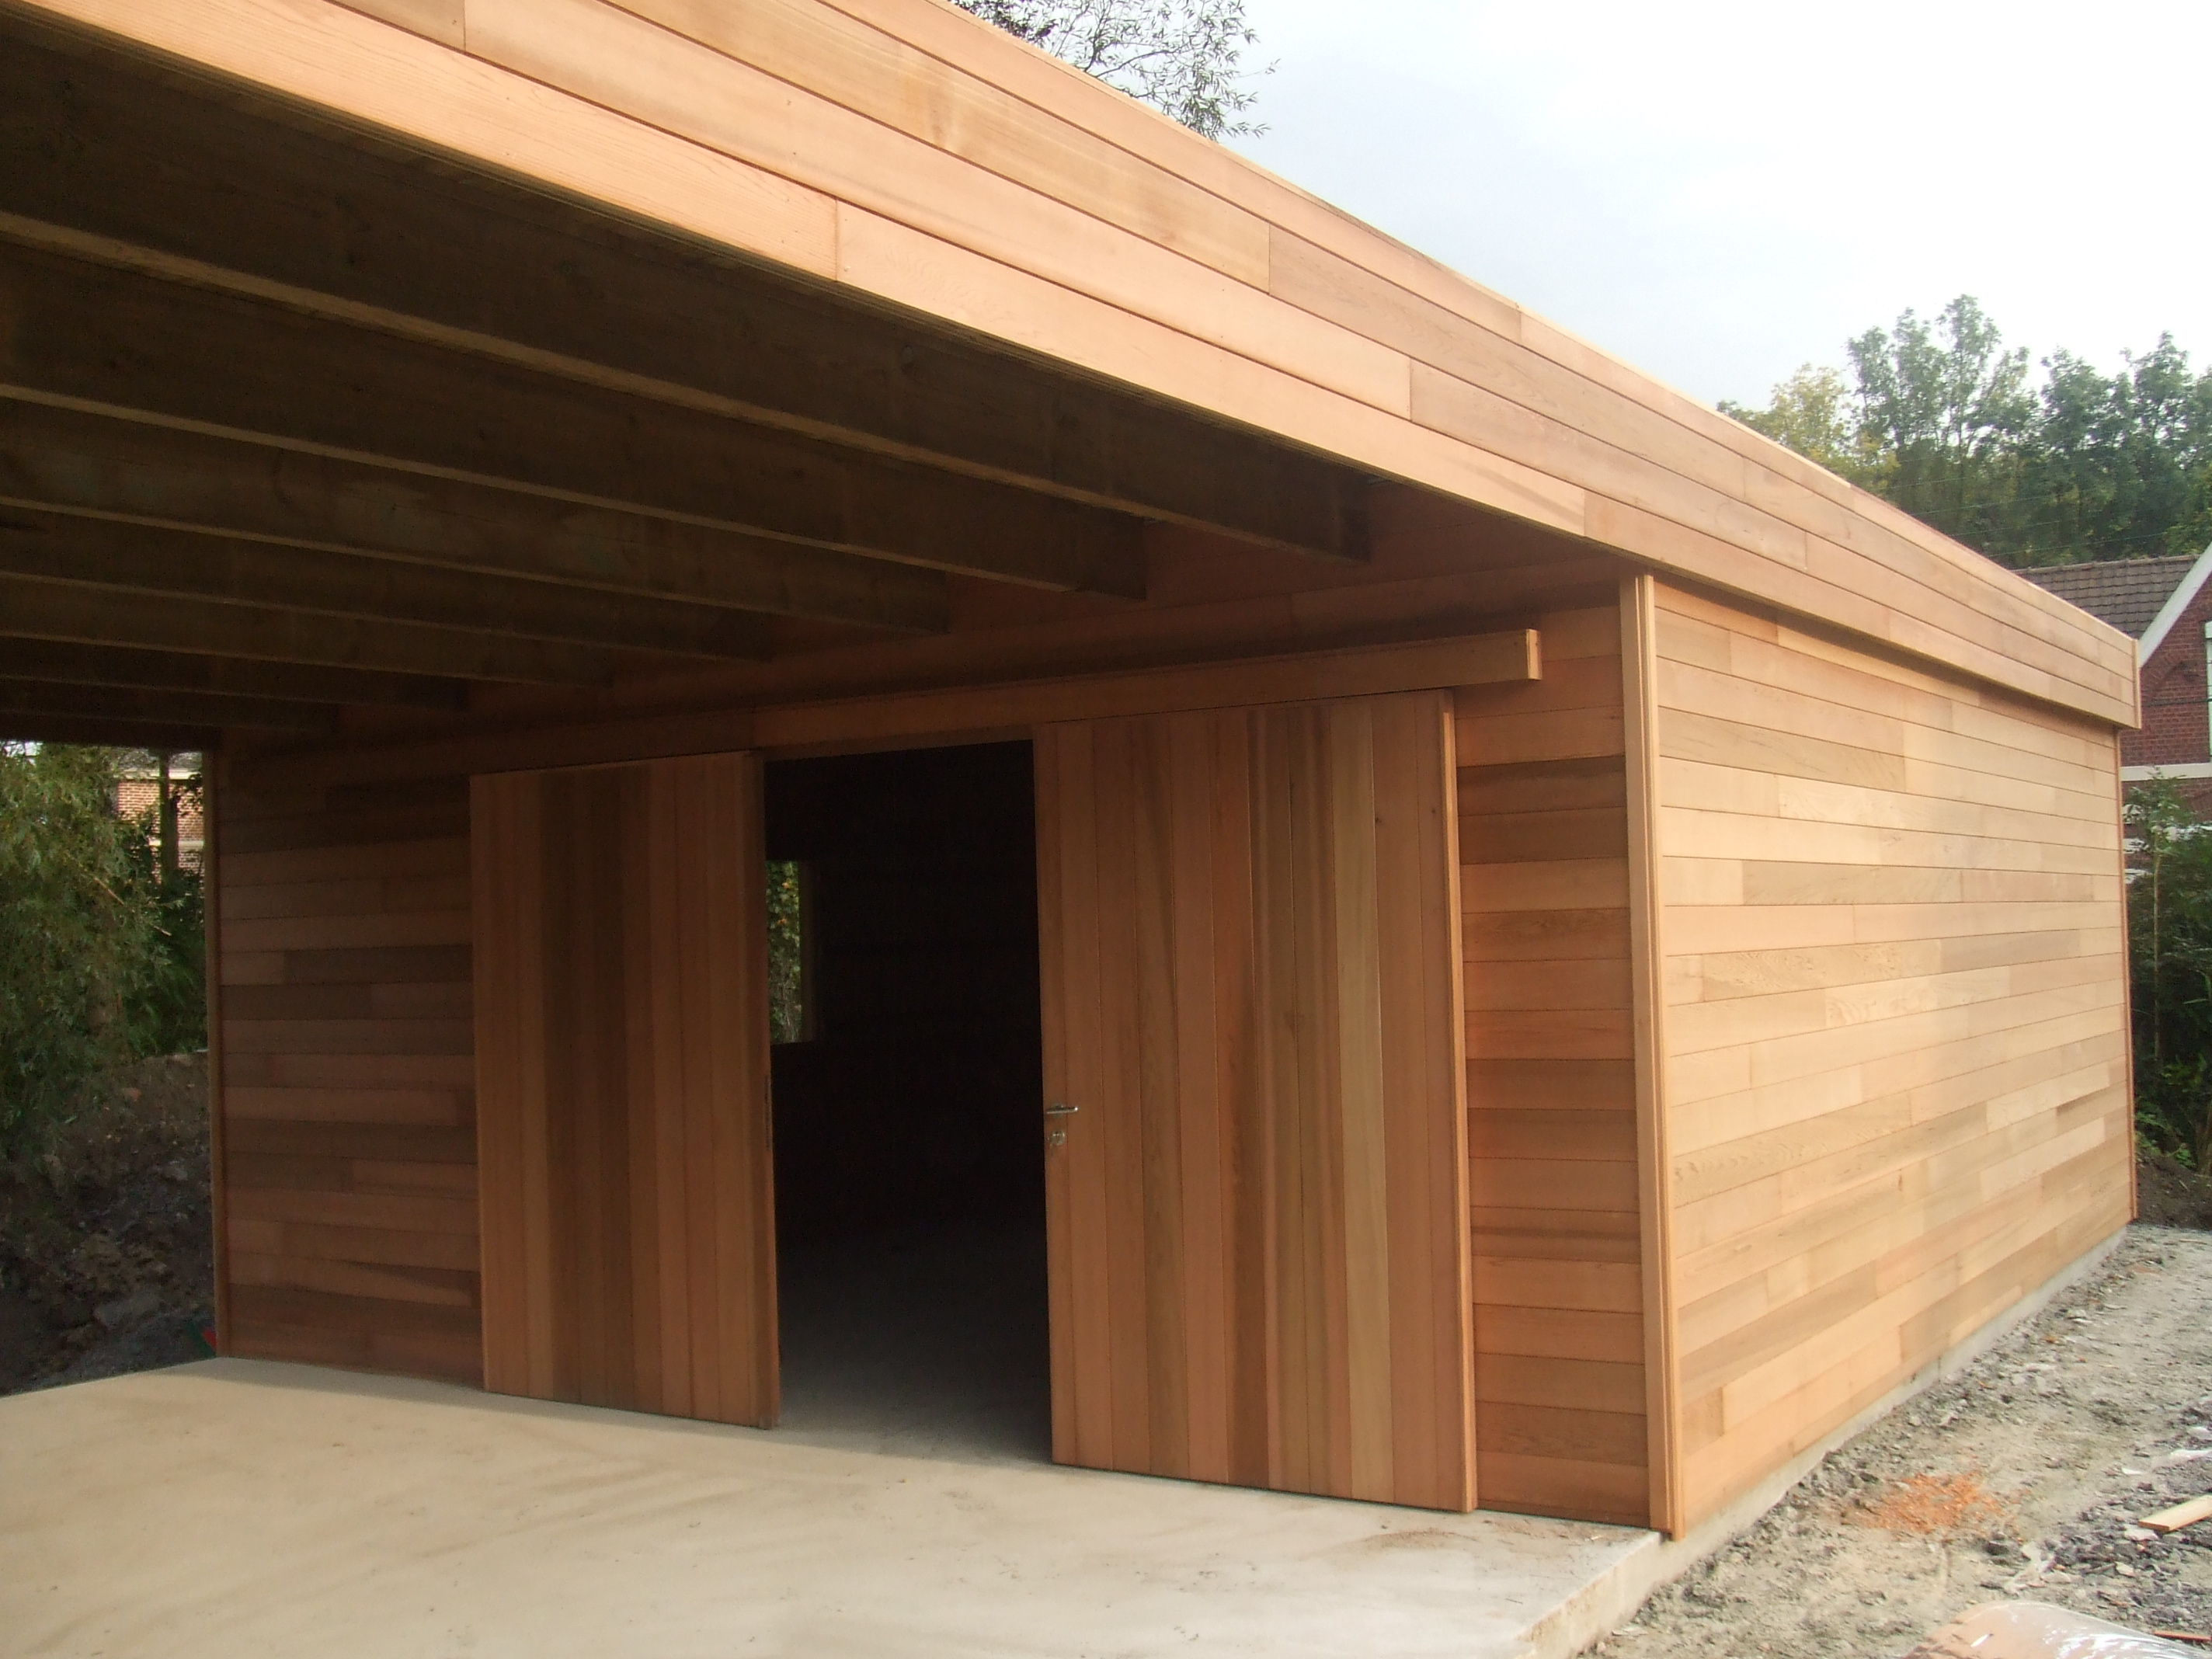 Garage bois sur mesure garage carport en red cedar Garage carports